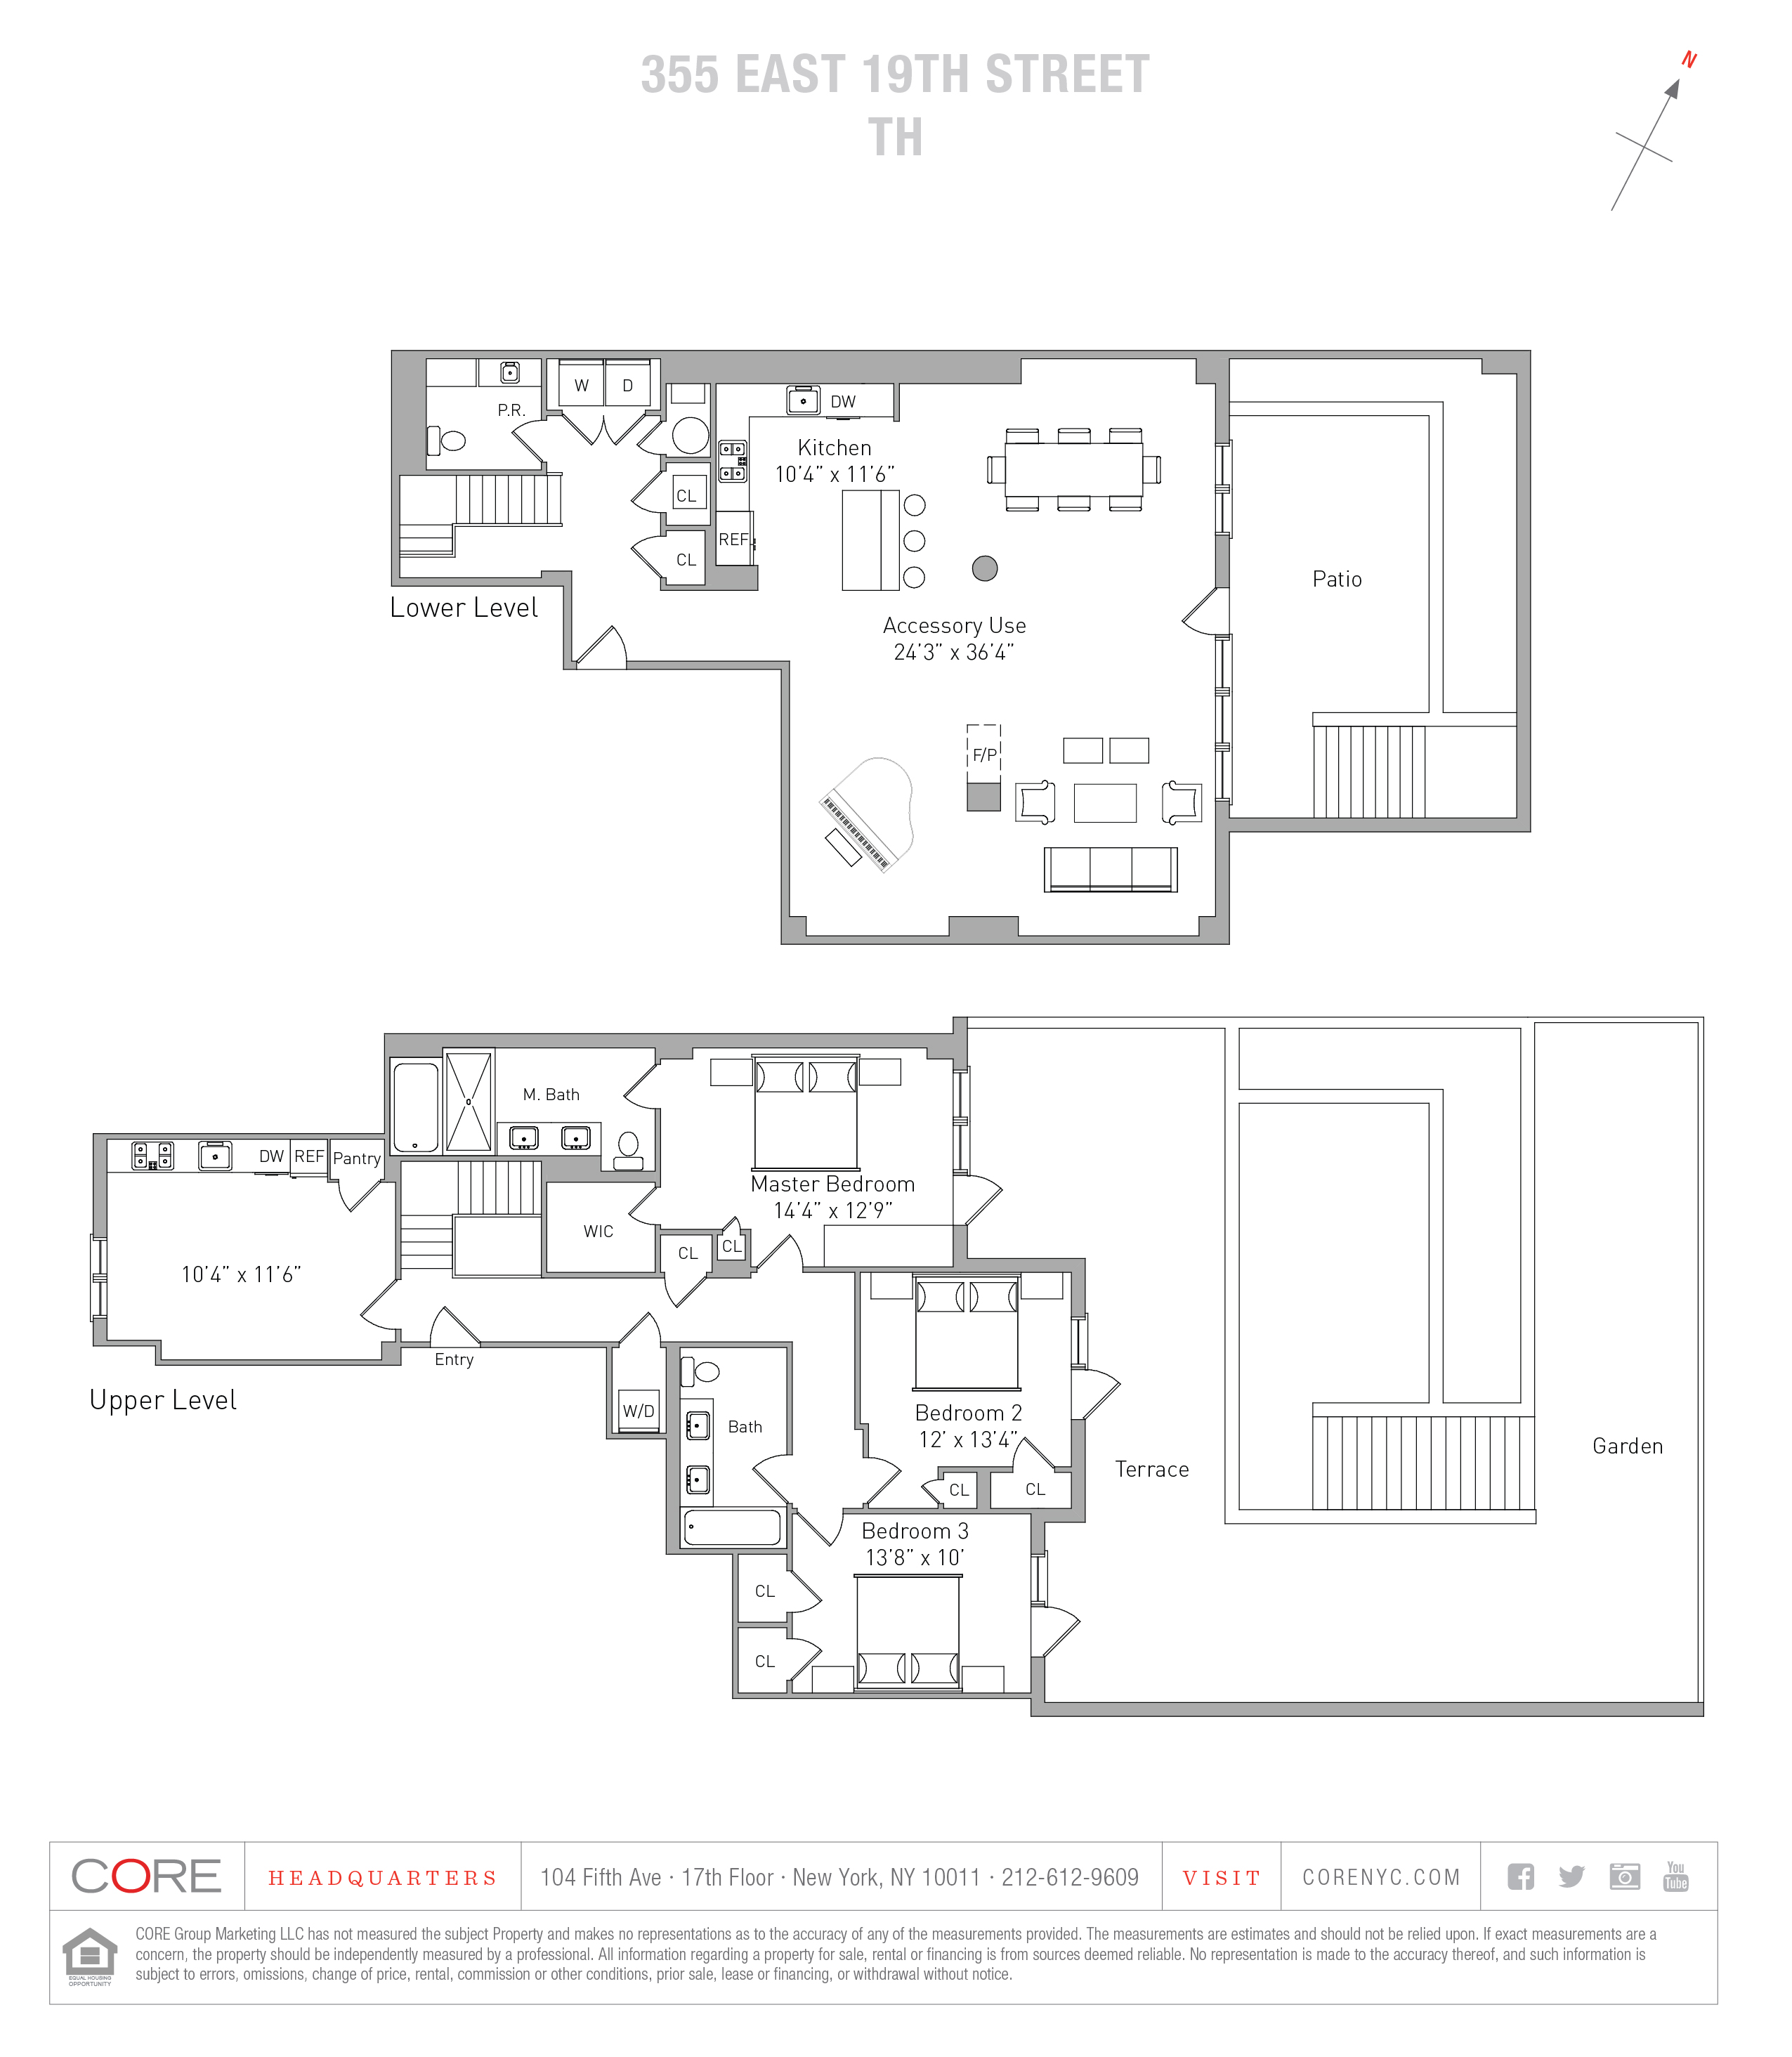 355 East 19th St. Townhouse, New York, NY 10003